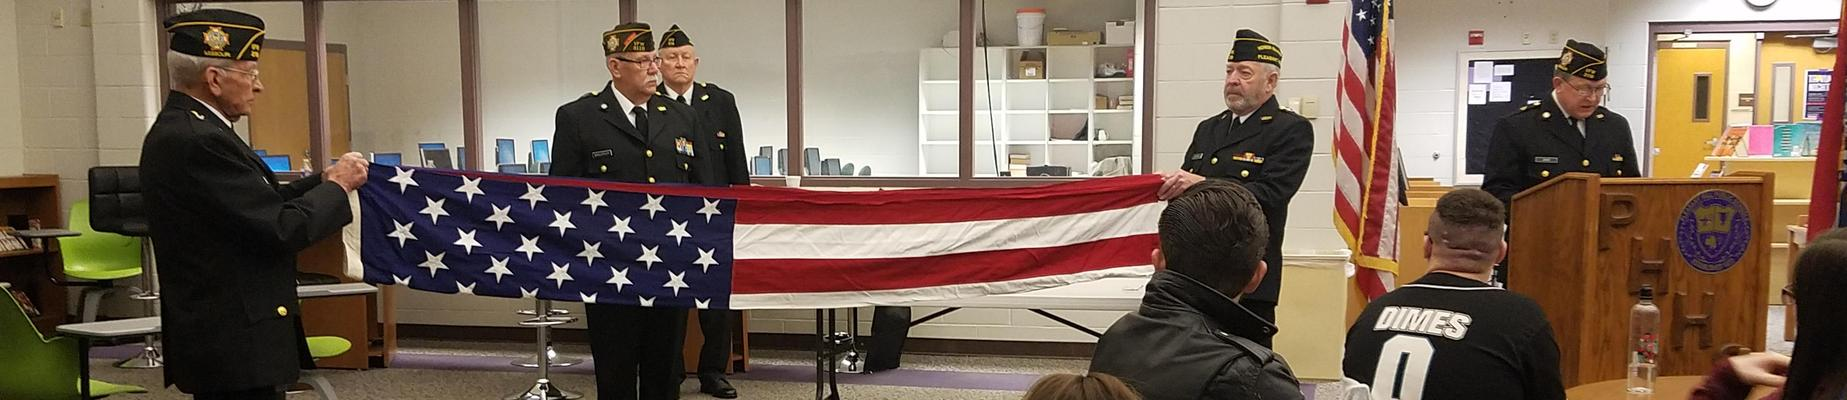 VFW Presentation to all American History classes